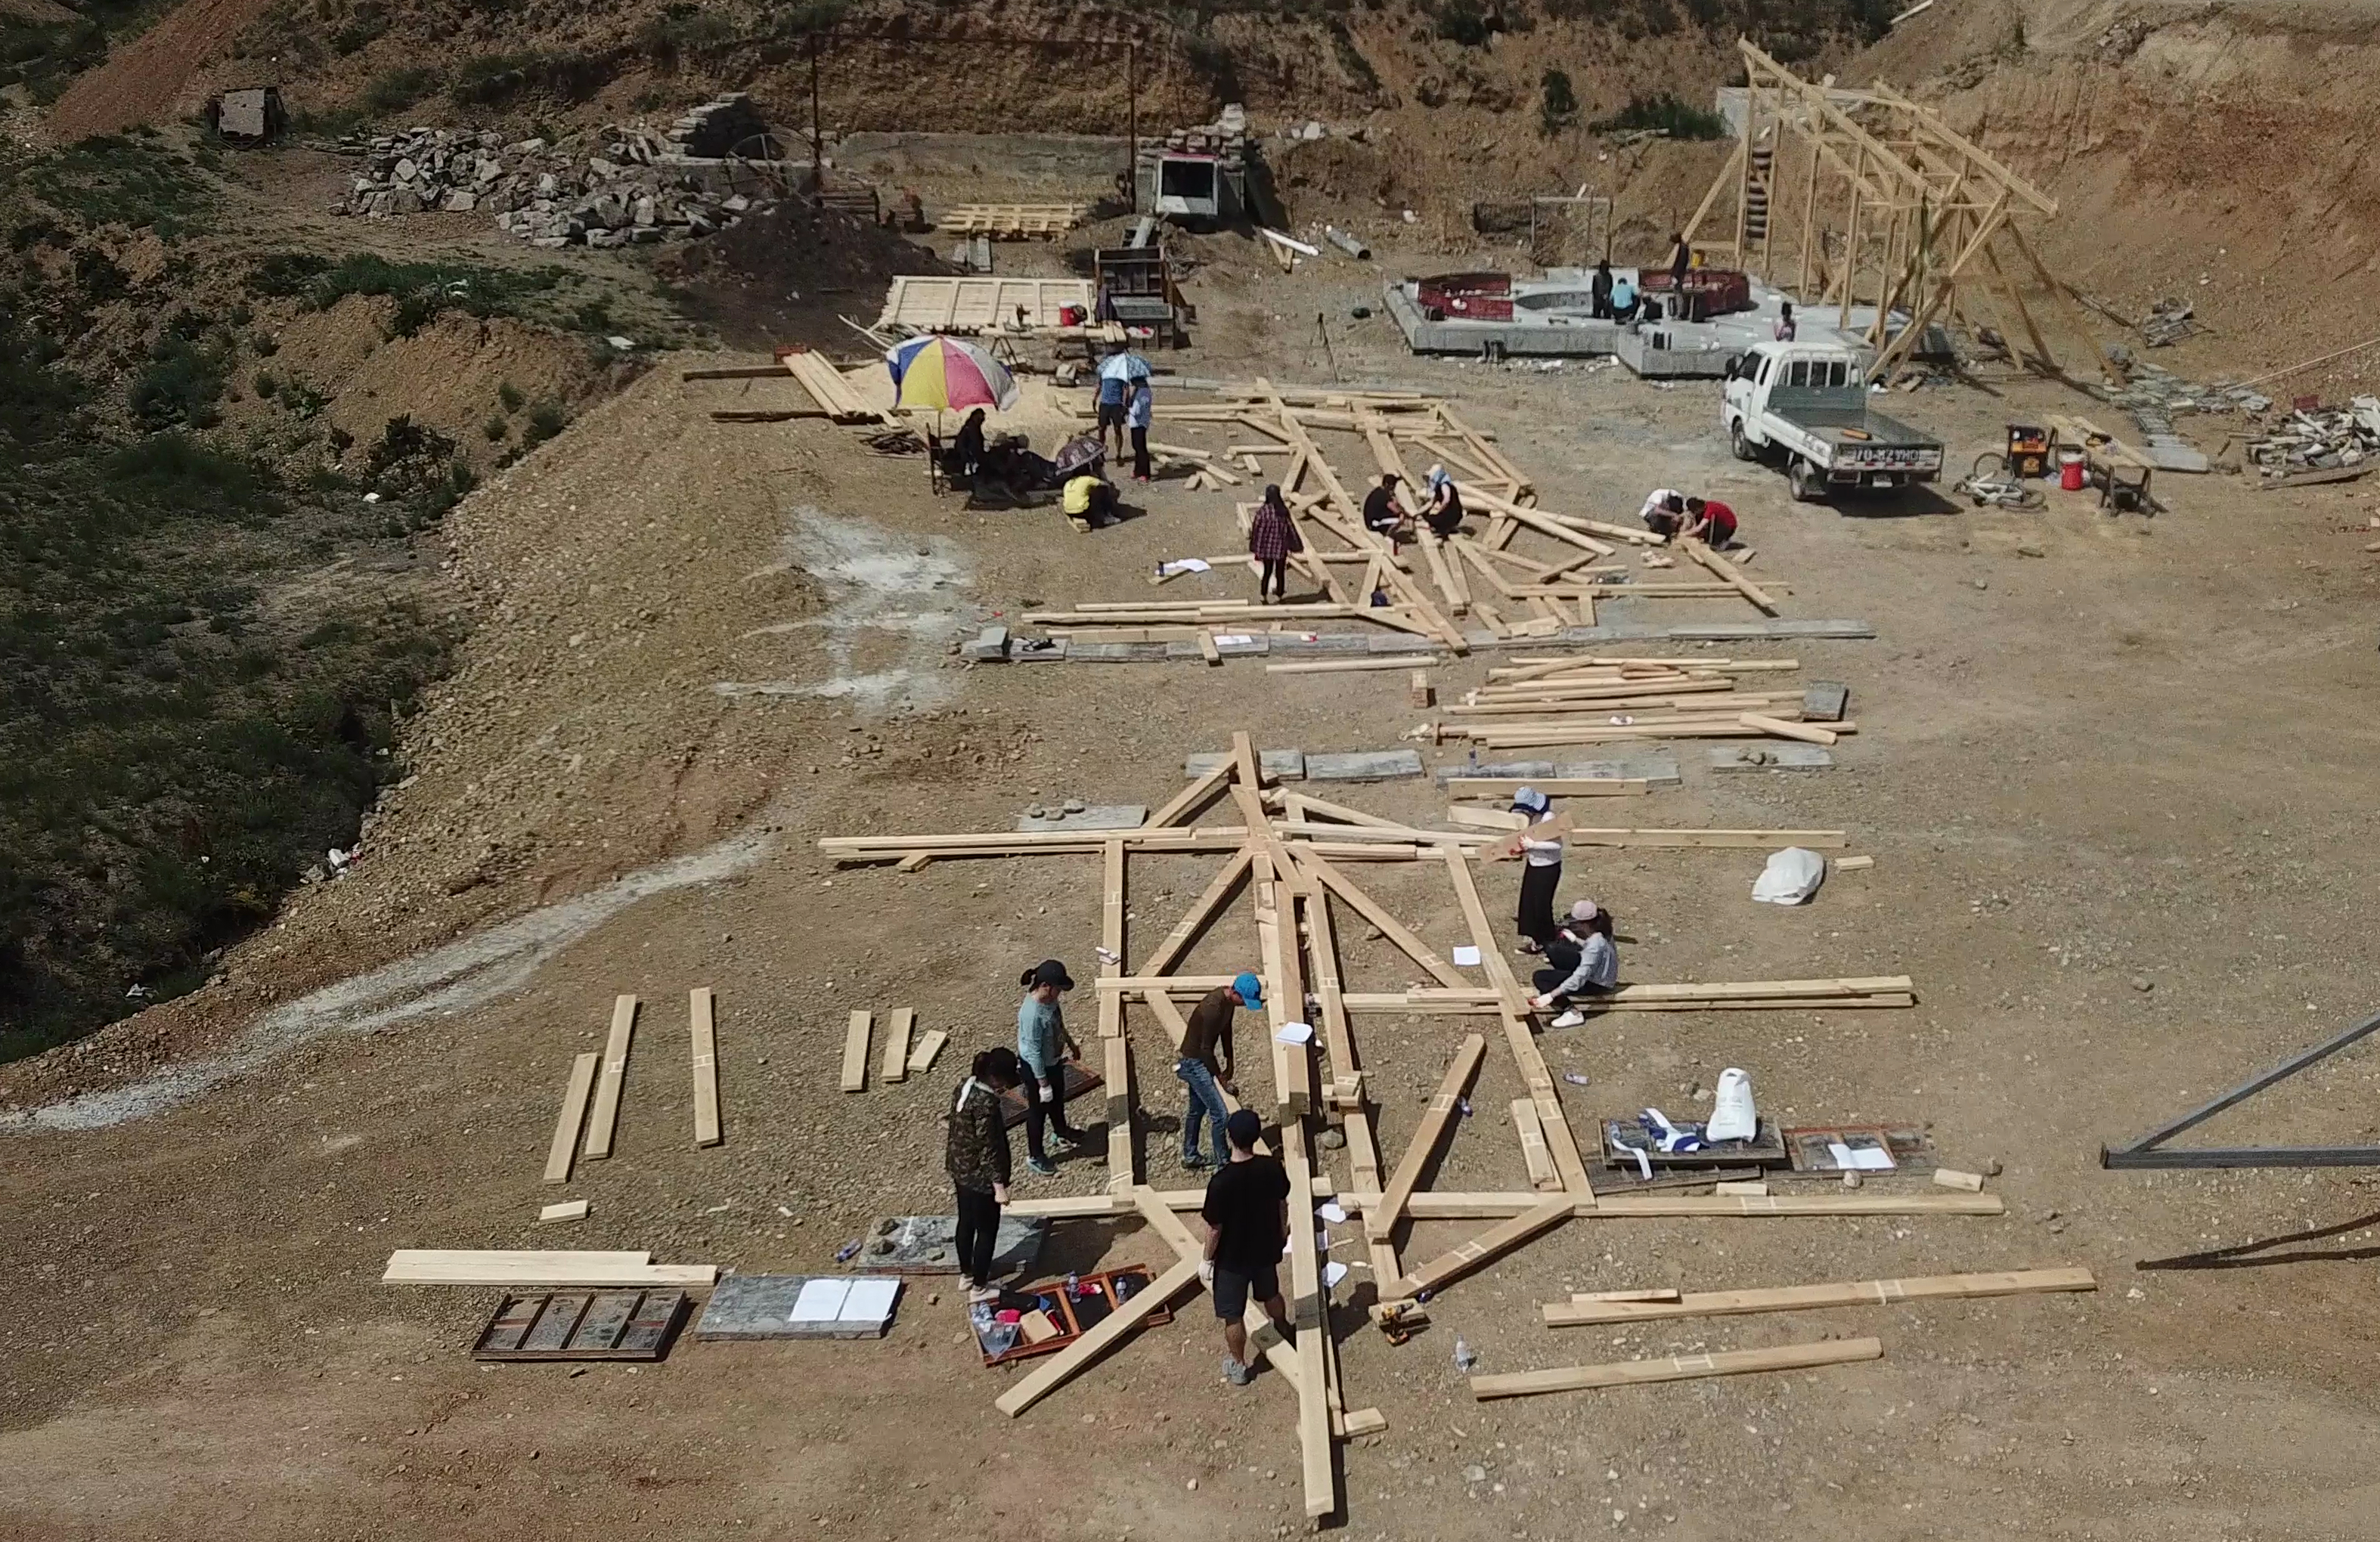 Construction site with wooden beams laid out on a dirt plain. People gathered around discussing the project.